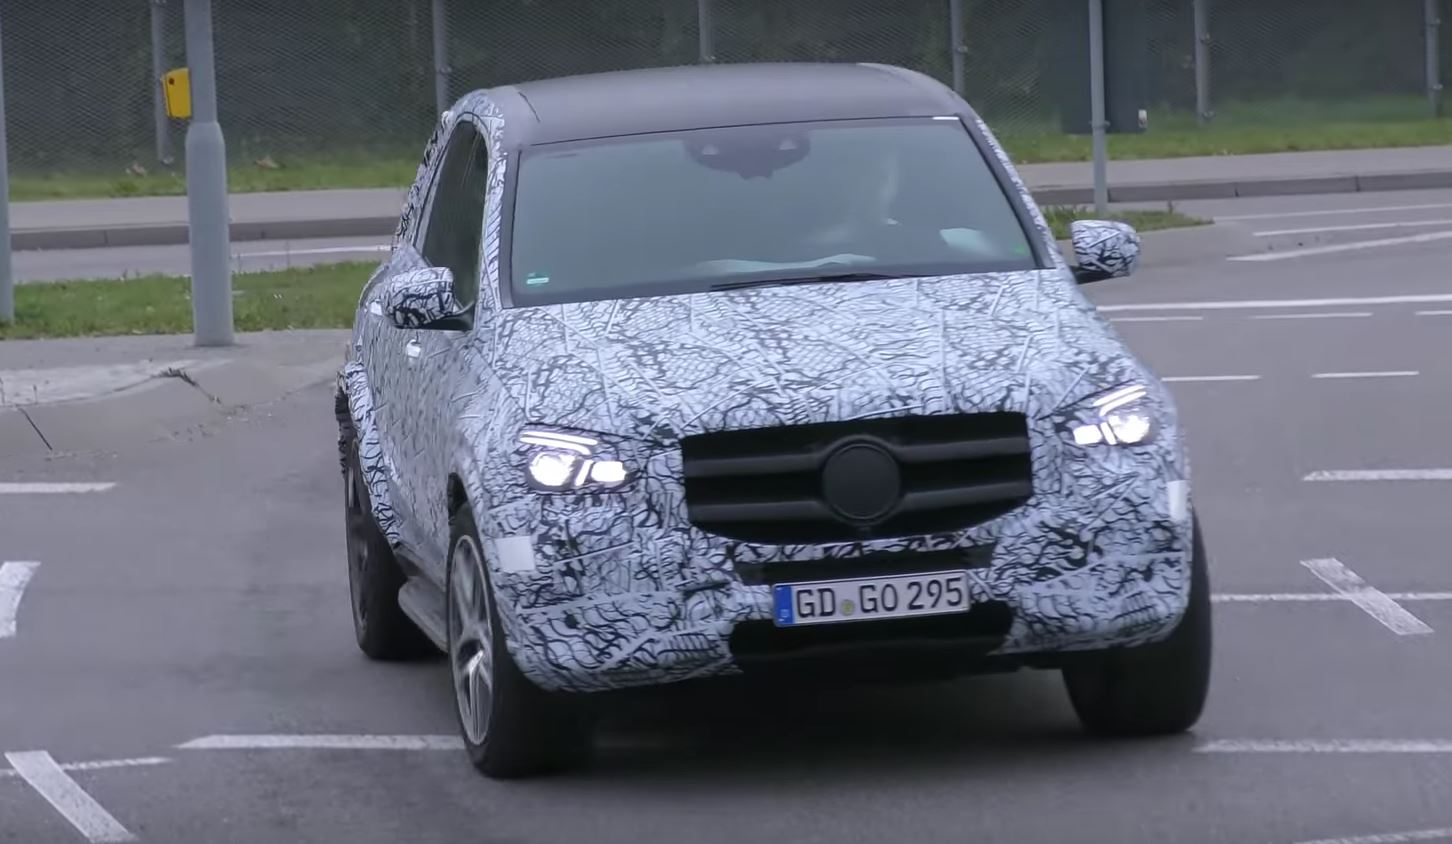 2019 Mercedes Gle Caught In Traffic Looks Like The E Cl Of